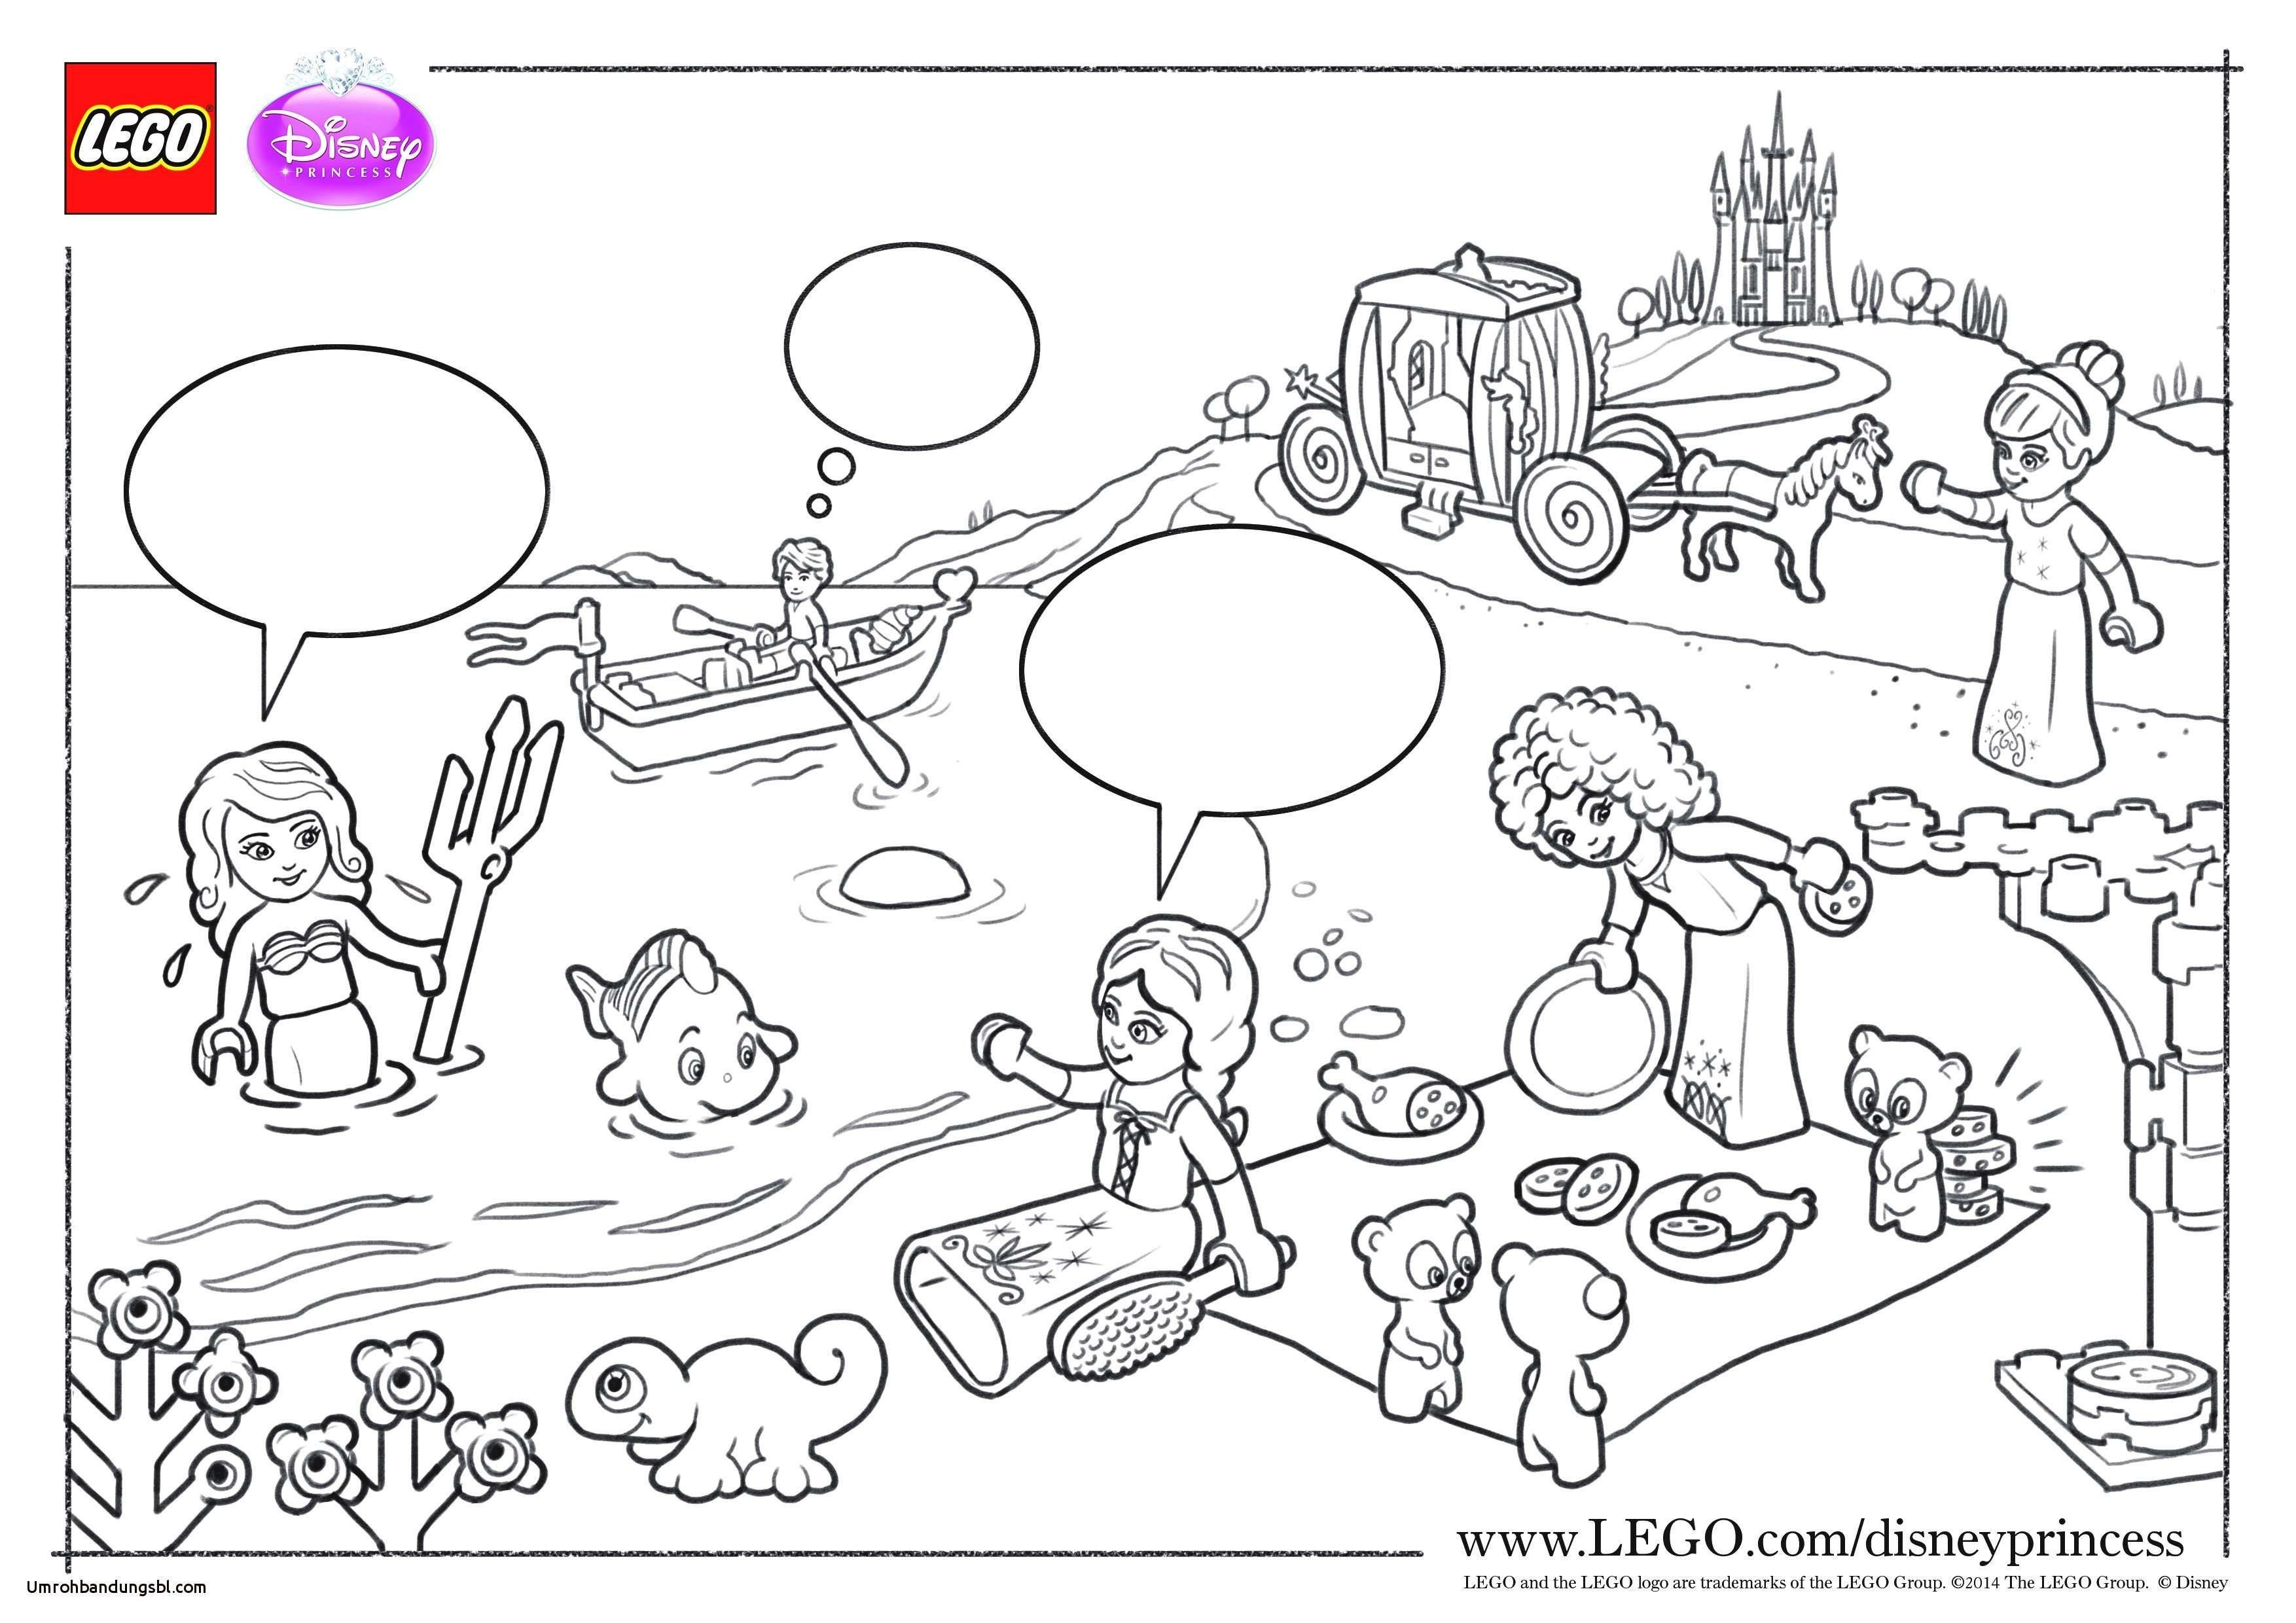 27 New Disney Coloring Pages Pdf In 2020 Lego Coloring Pages Disney Coloring Pages Lego Coloring